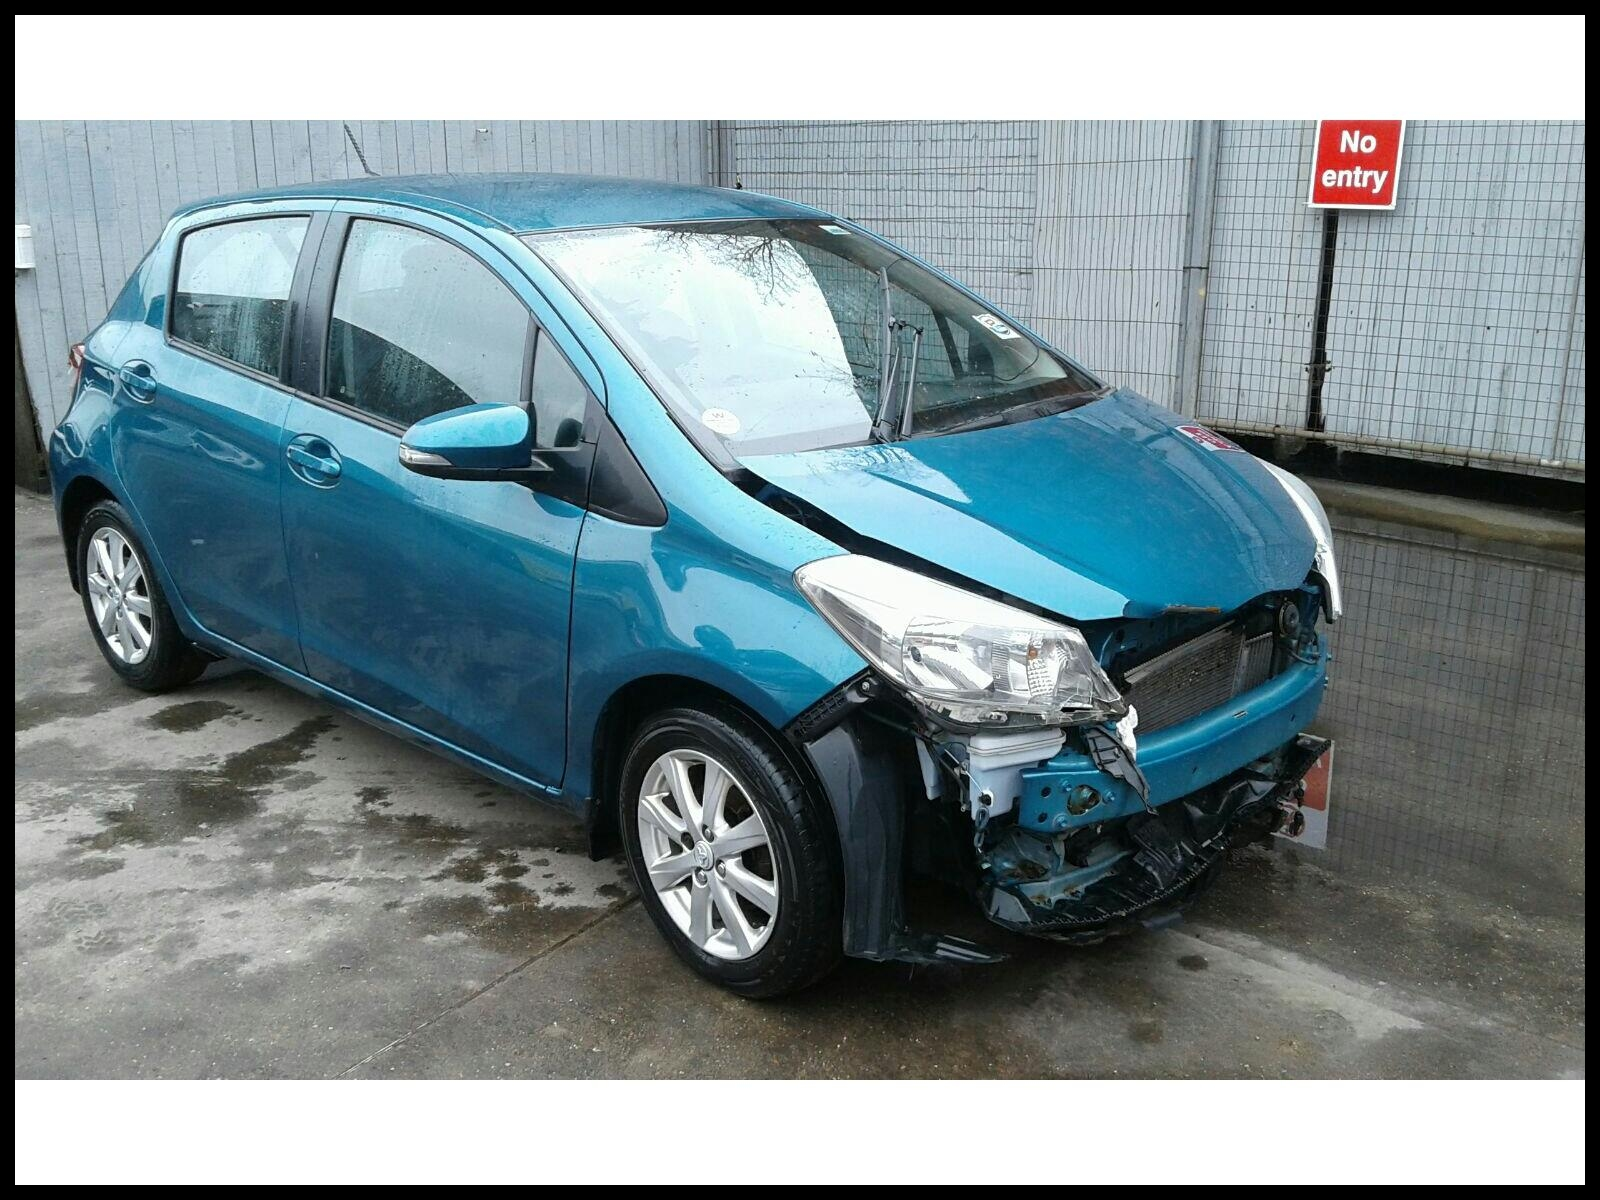 Toyota Yaris 2011 To 2014 5 Door Hatchback